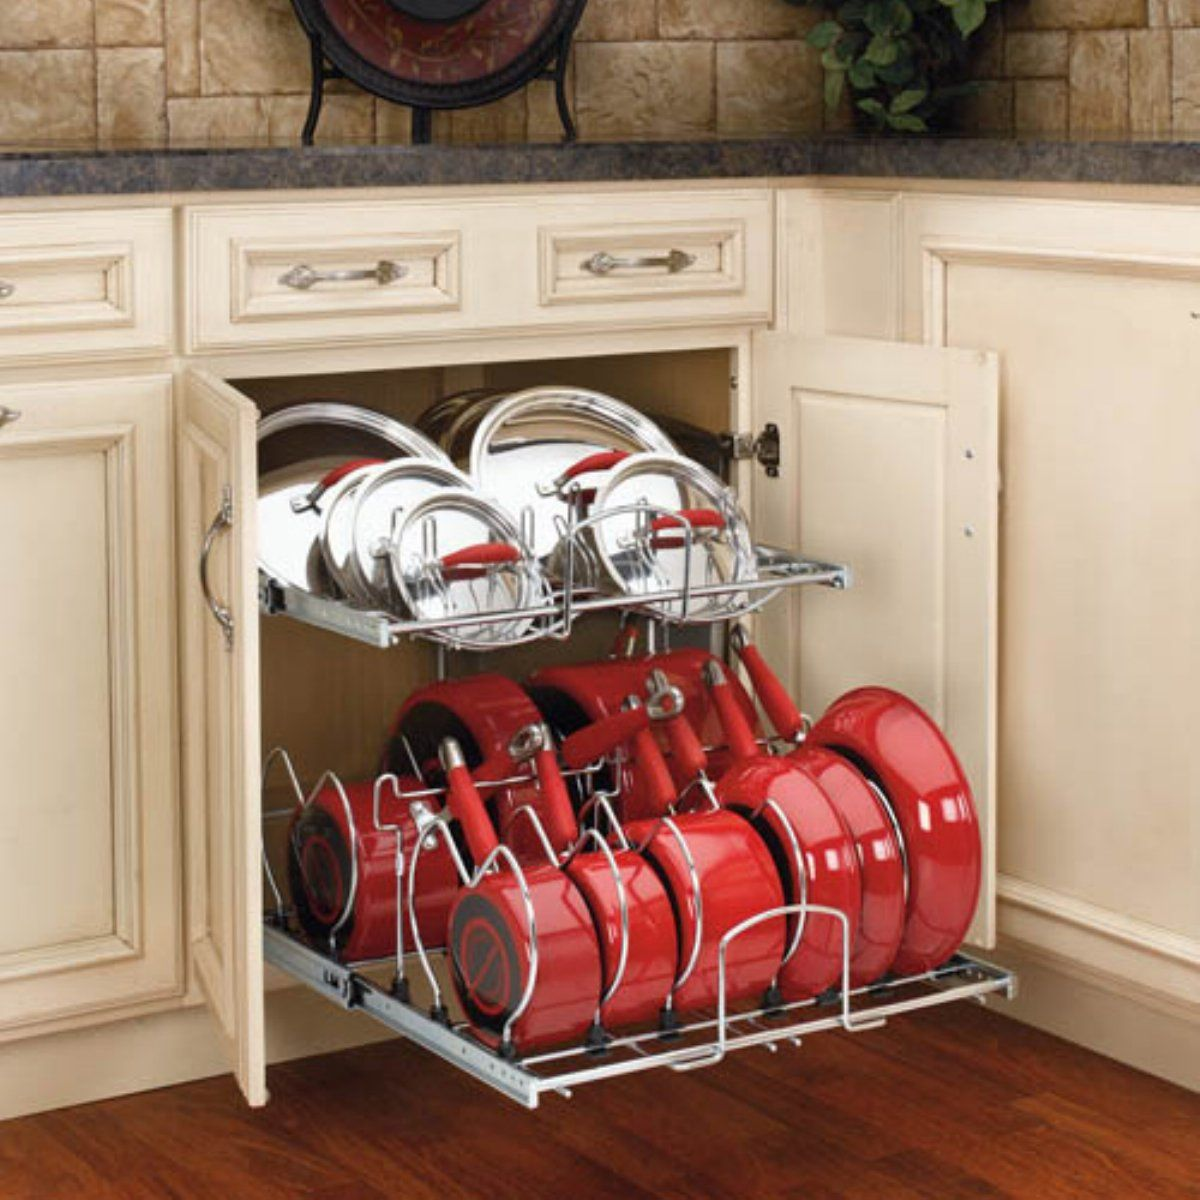 to organizer rev dishwasher out goods a more popular pans and pots two awesome trends of pull xfile rack shelf you best deliver cookware for spice tier kitchen wonderful